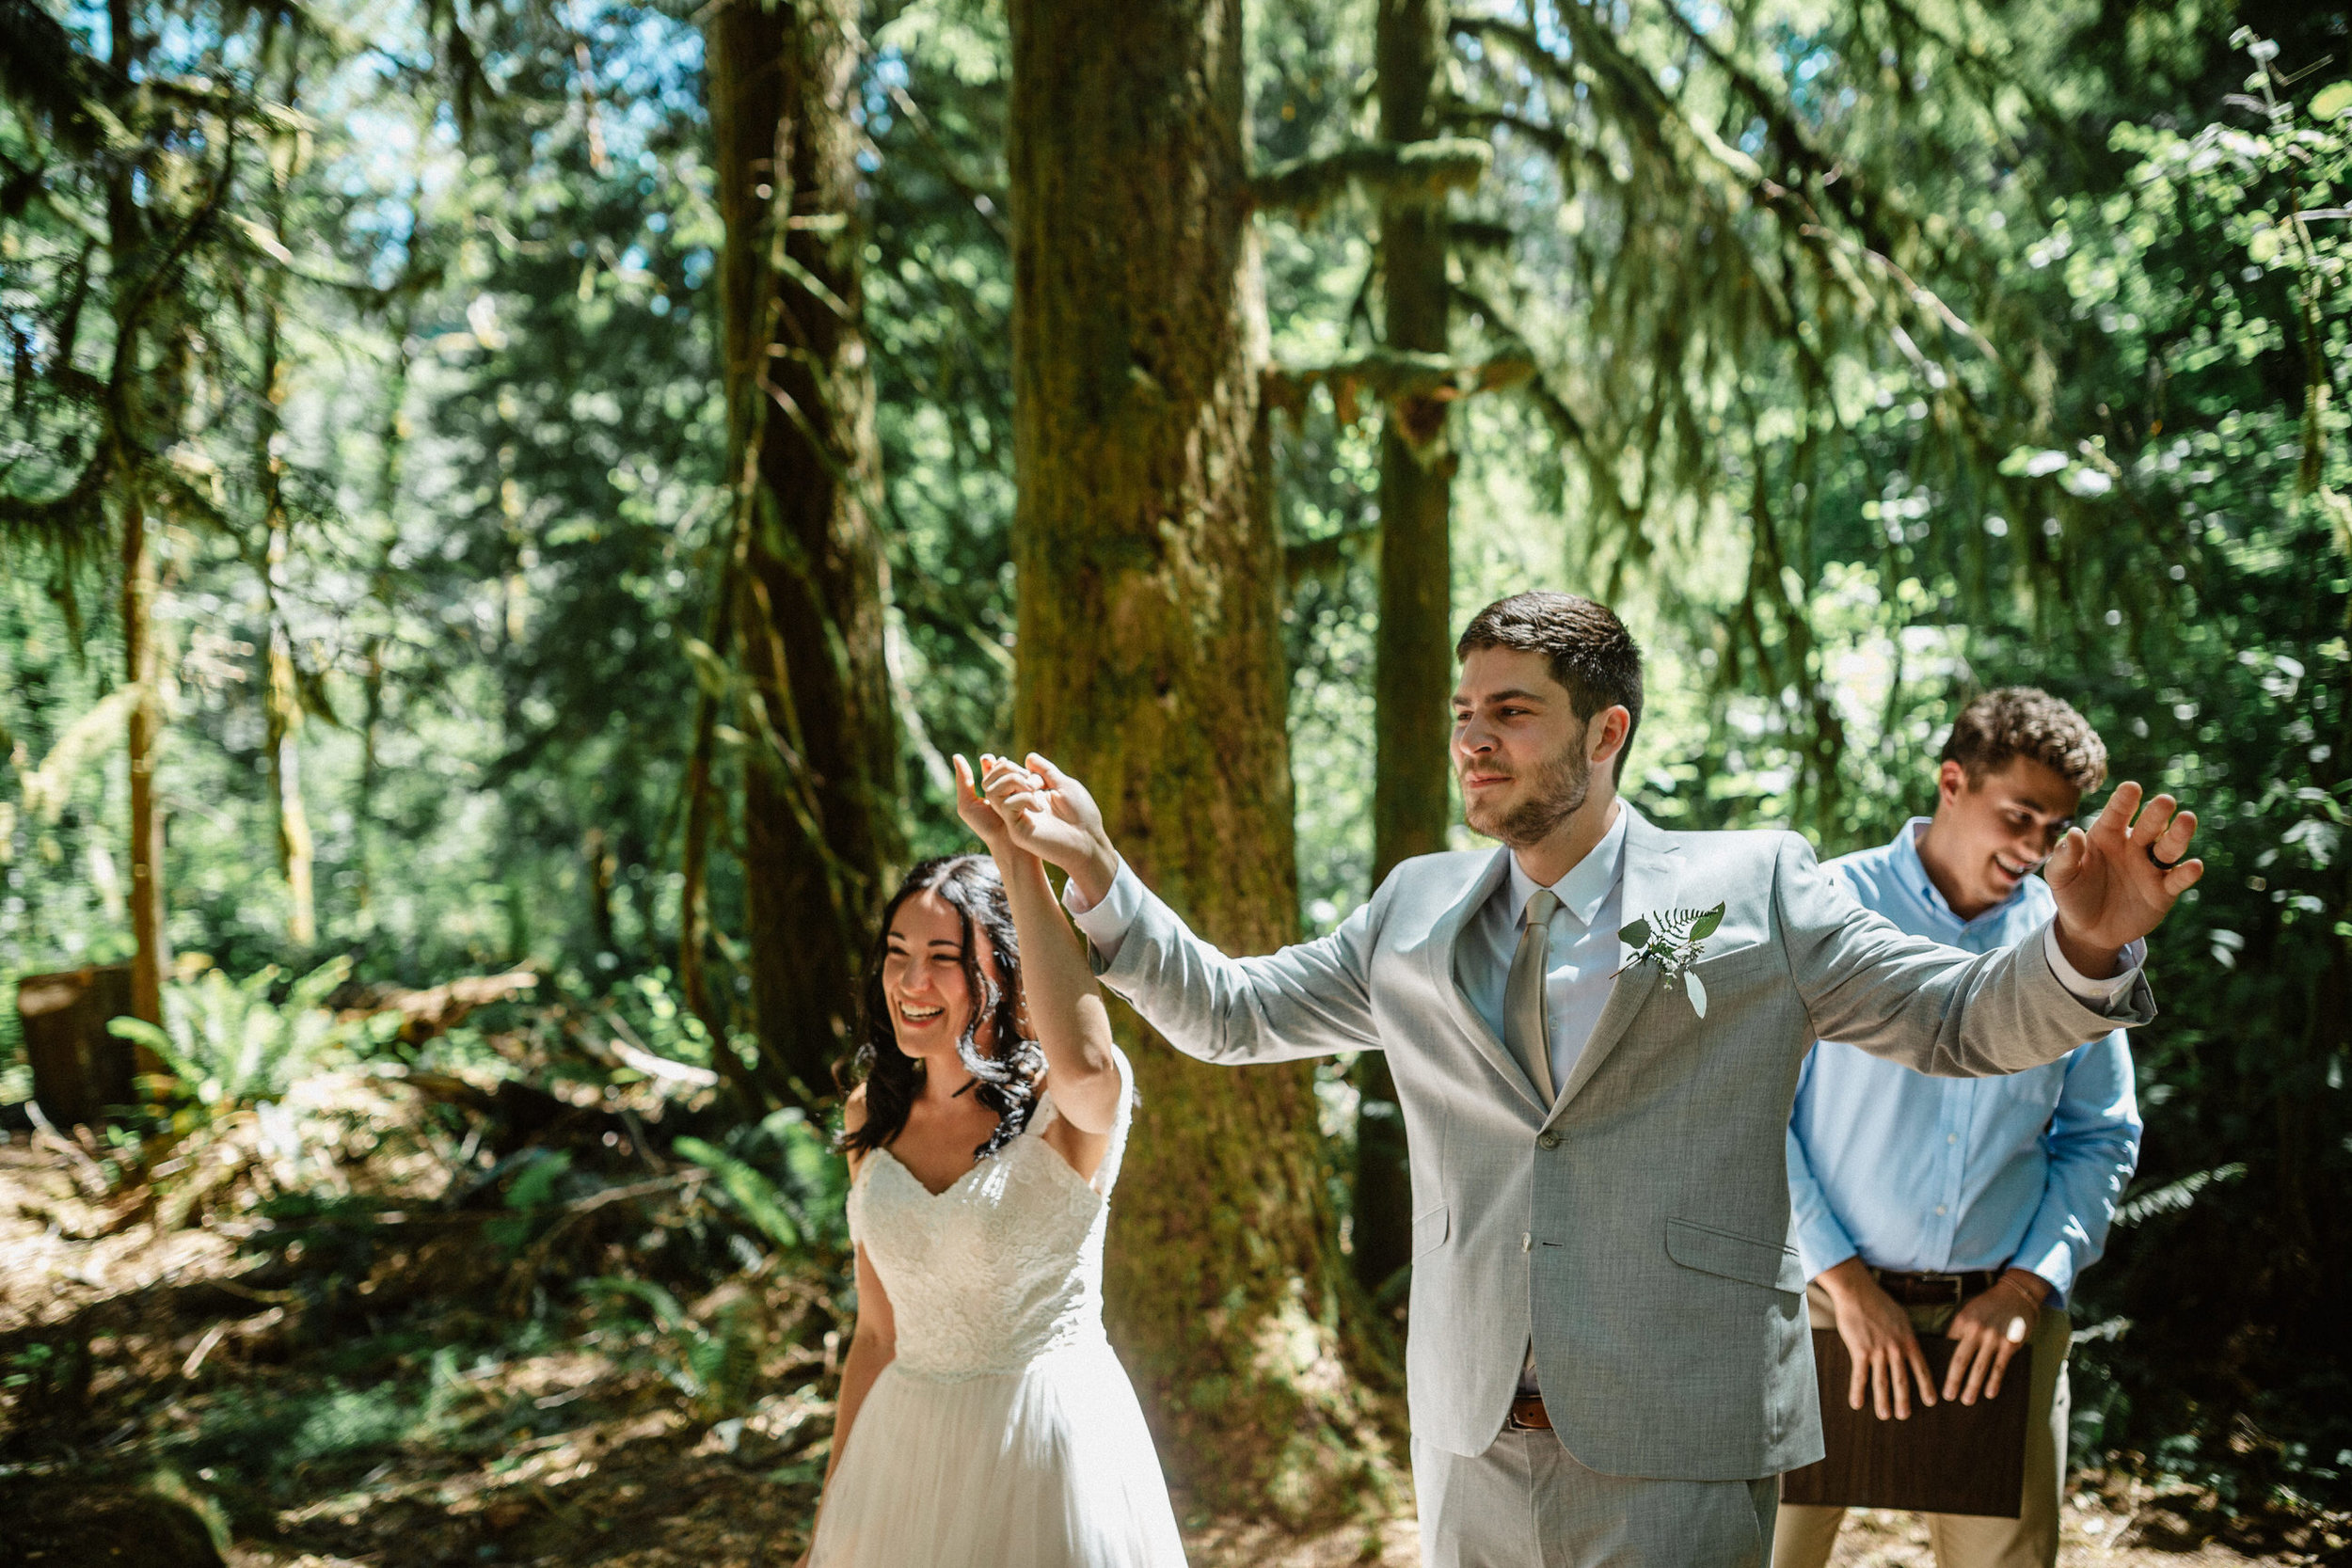 MT Hood Wildwood elopement wedding oregon portland photography0060.JPG